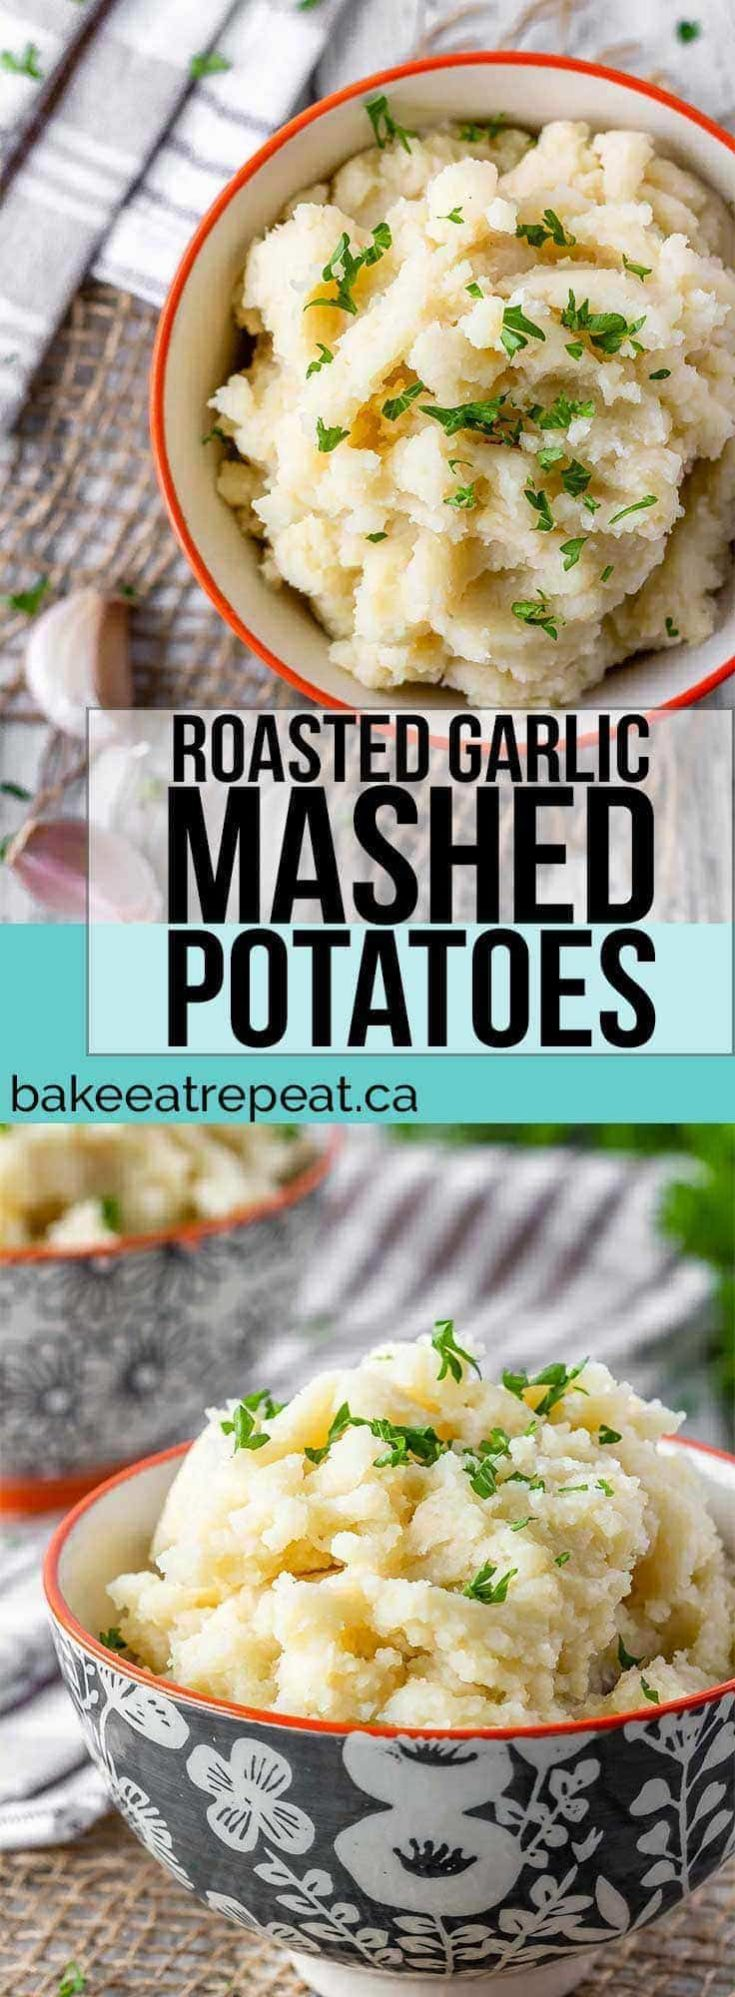 Roasted garlic mashed potatoes are so easy to make, and can even be made ahead of time. Cook time includes roasting time for the garlic, time for the potatoes varies depending on the cooking method.